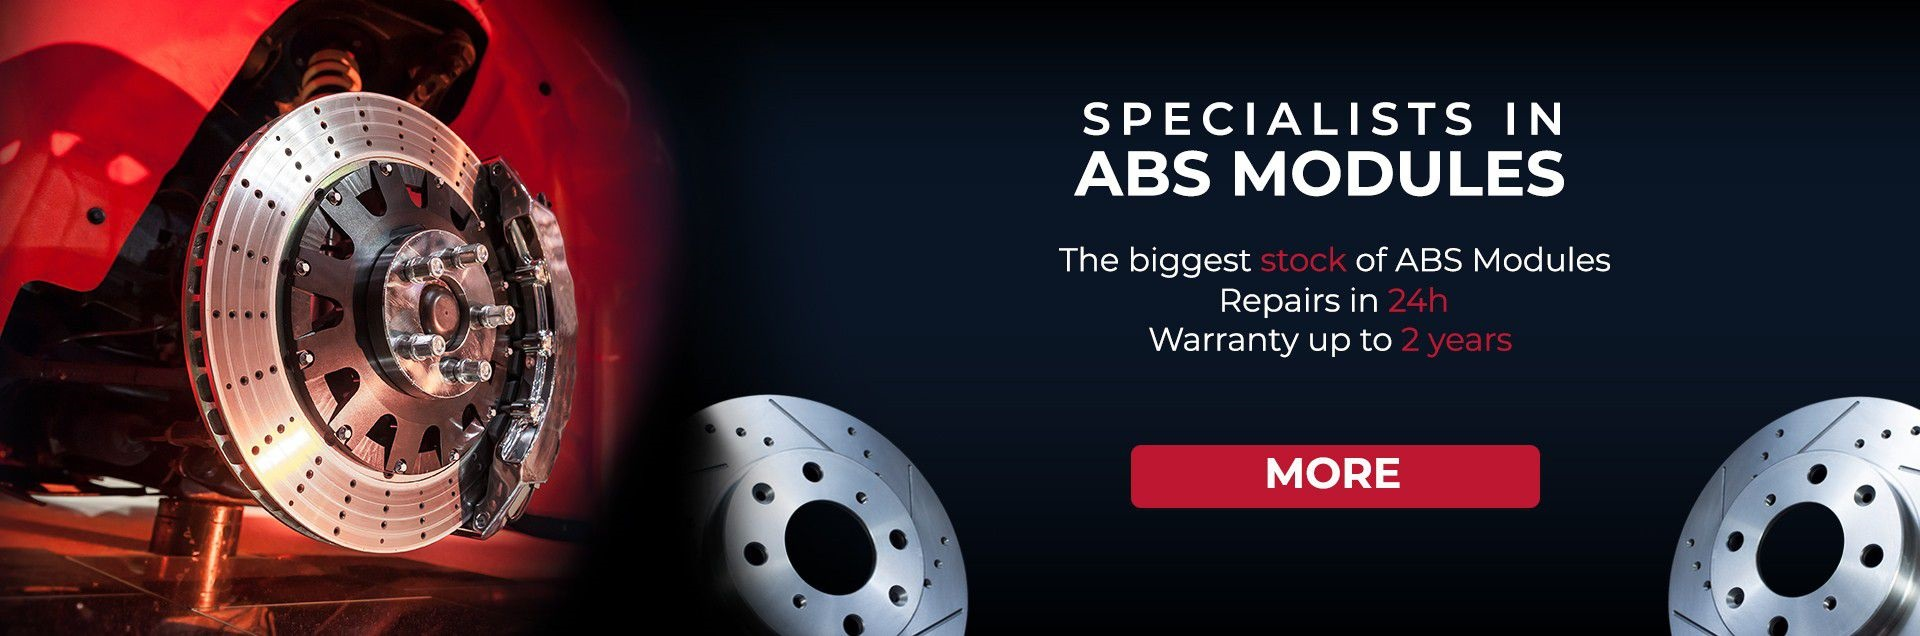 ABS Modules specialists